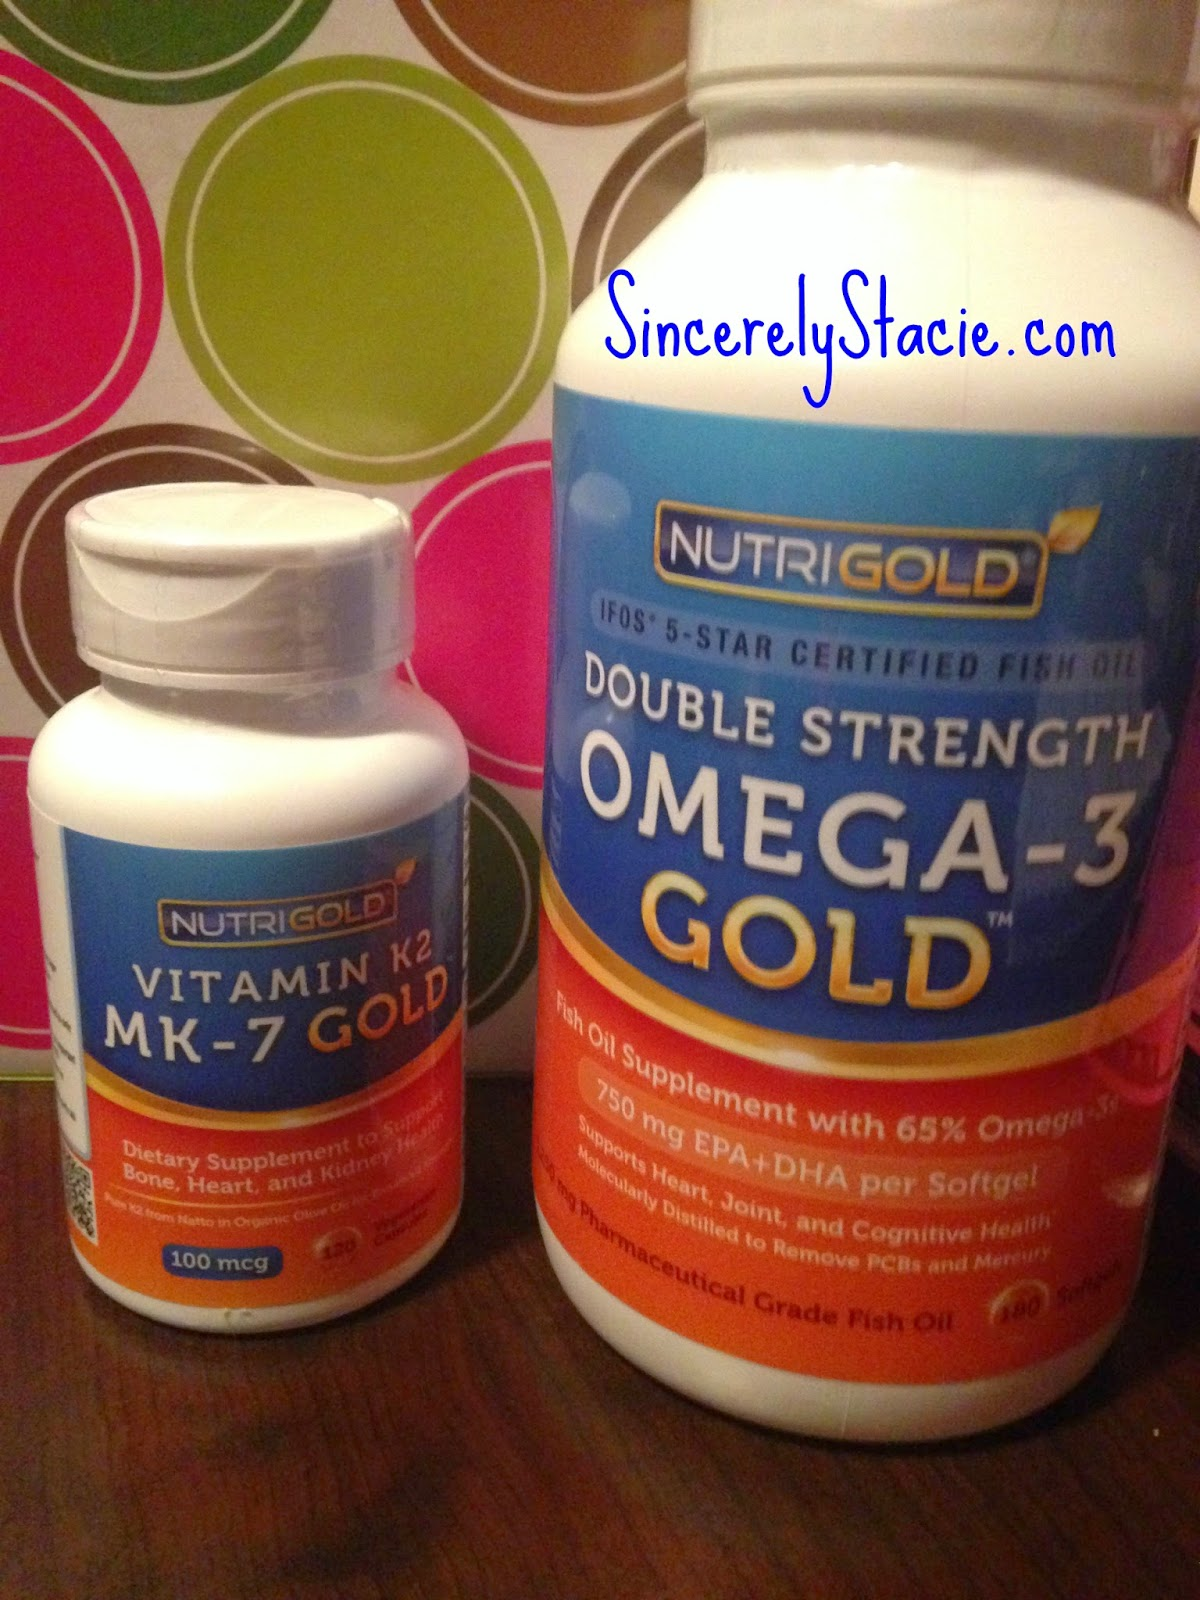 Product Review: NutriGold Organic Chia Seeds, Omega-3, And